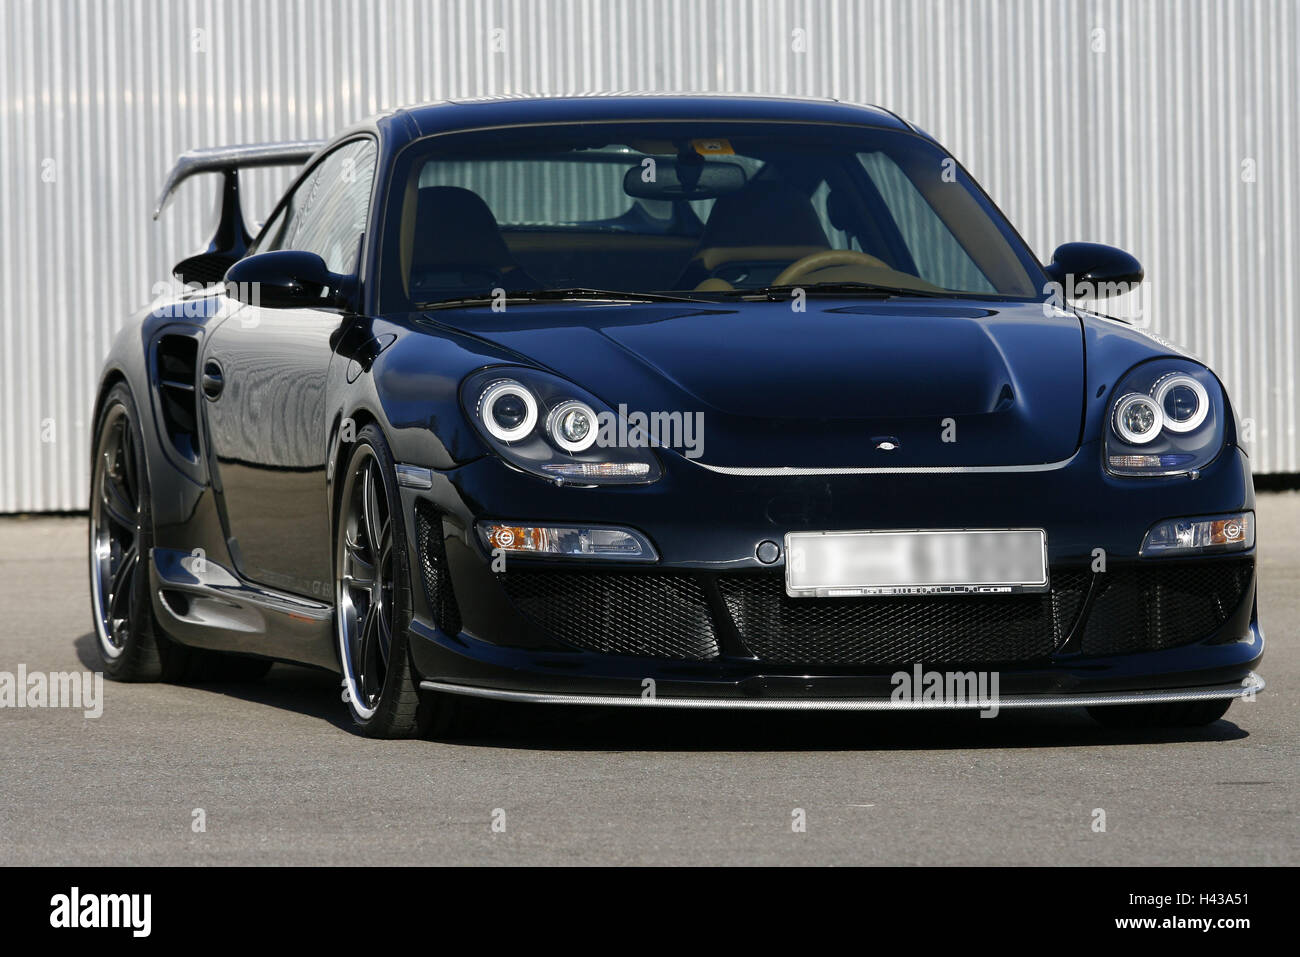 Sports cars, Porsche Gemballa, black, car, Porsche, Gemballa, luxury, nobly, exclusively, expensive, vehicle, motoring, - Stock Image